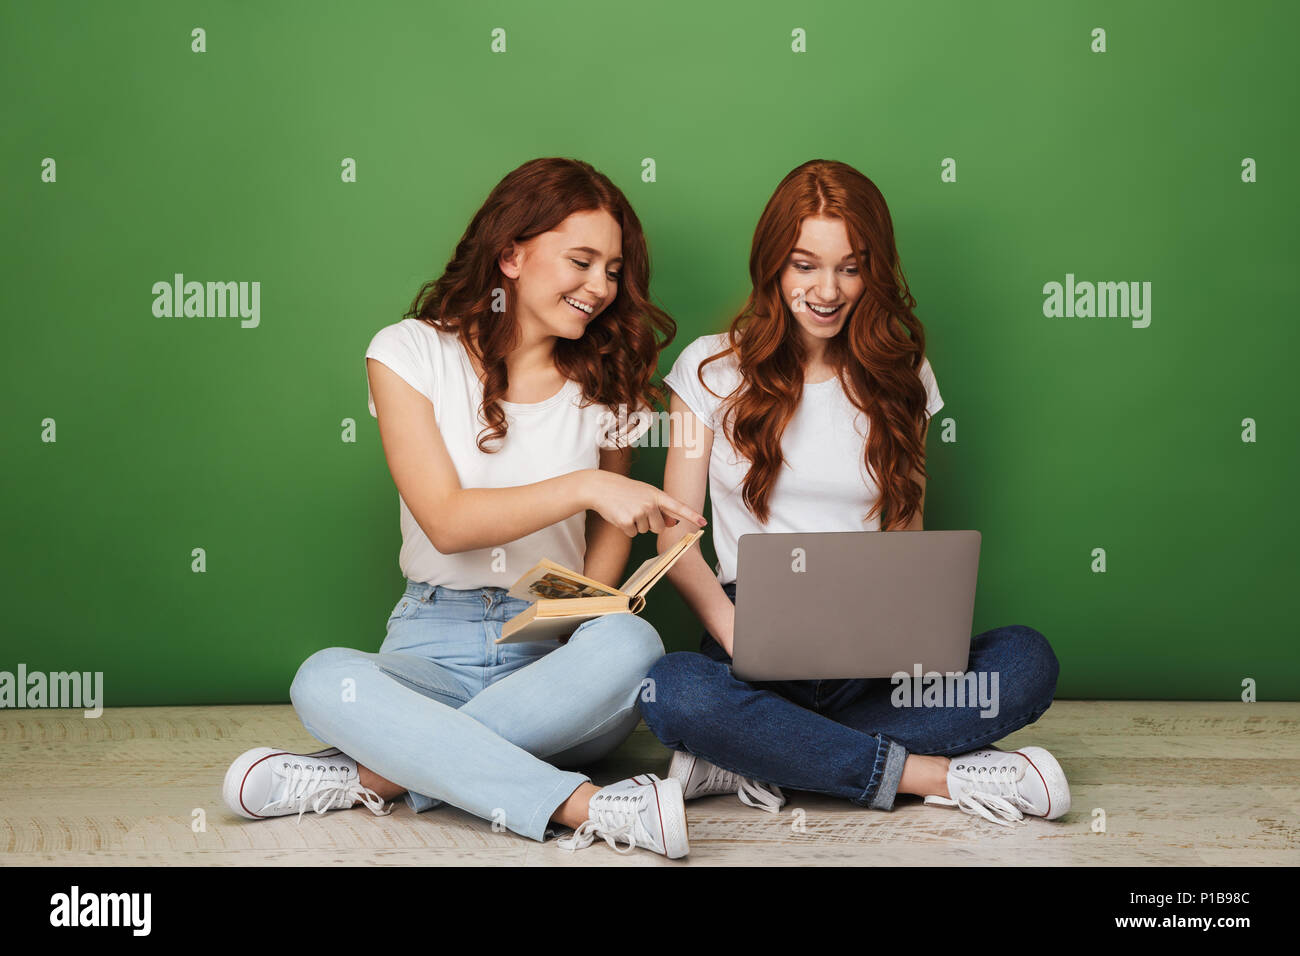 Portrait Of Two Smiling Young Redhead Girls Pointing Finger At Laptop Computer While Sitting On A